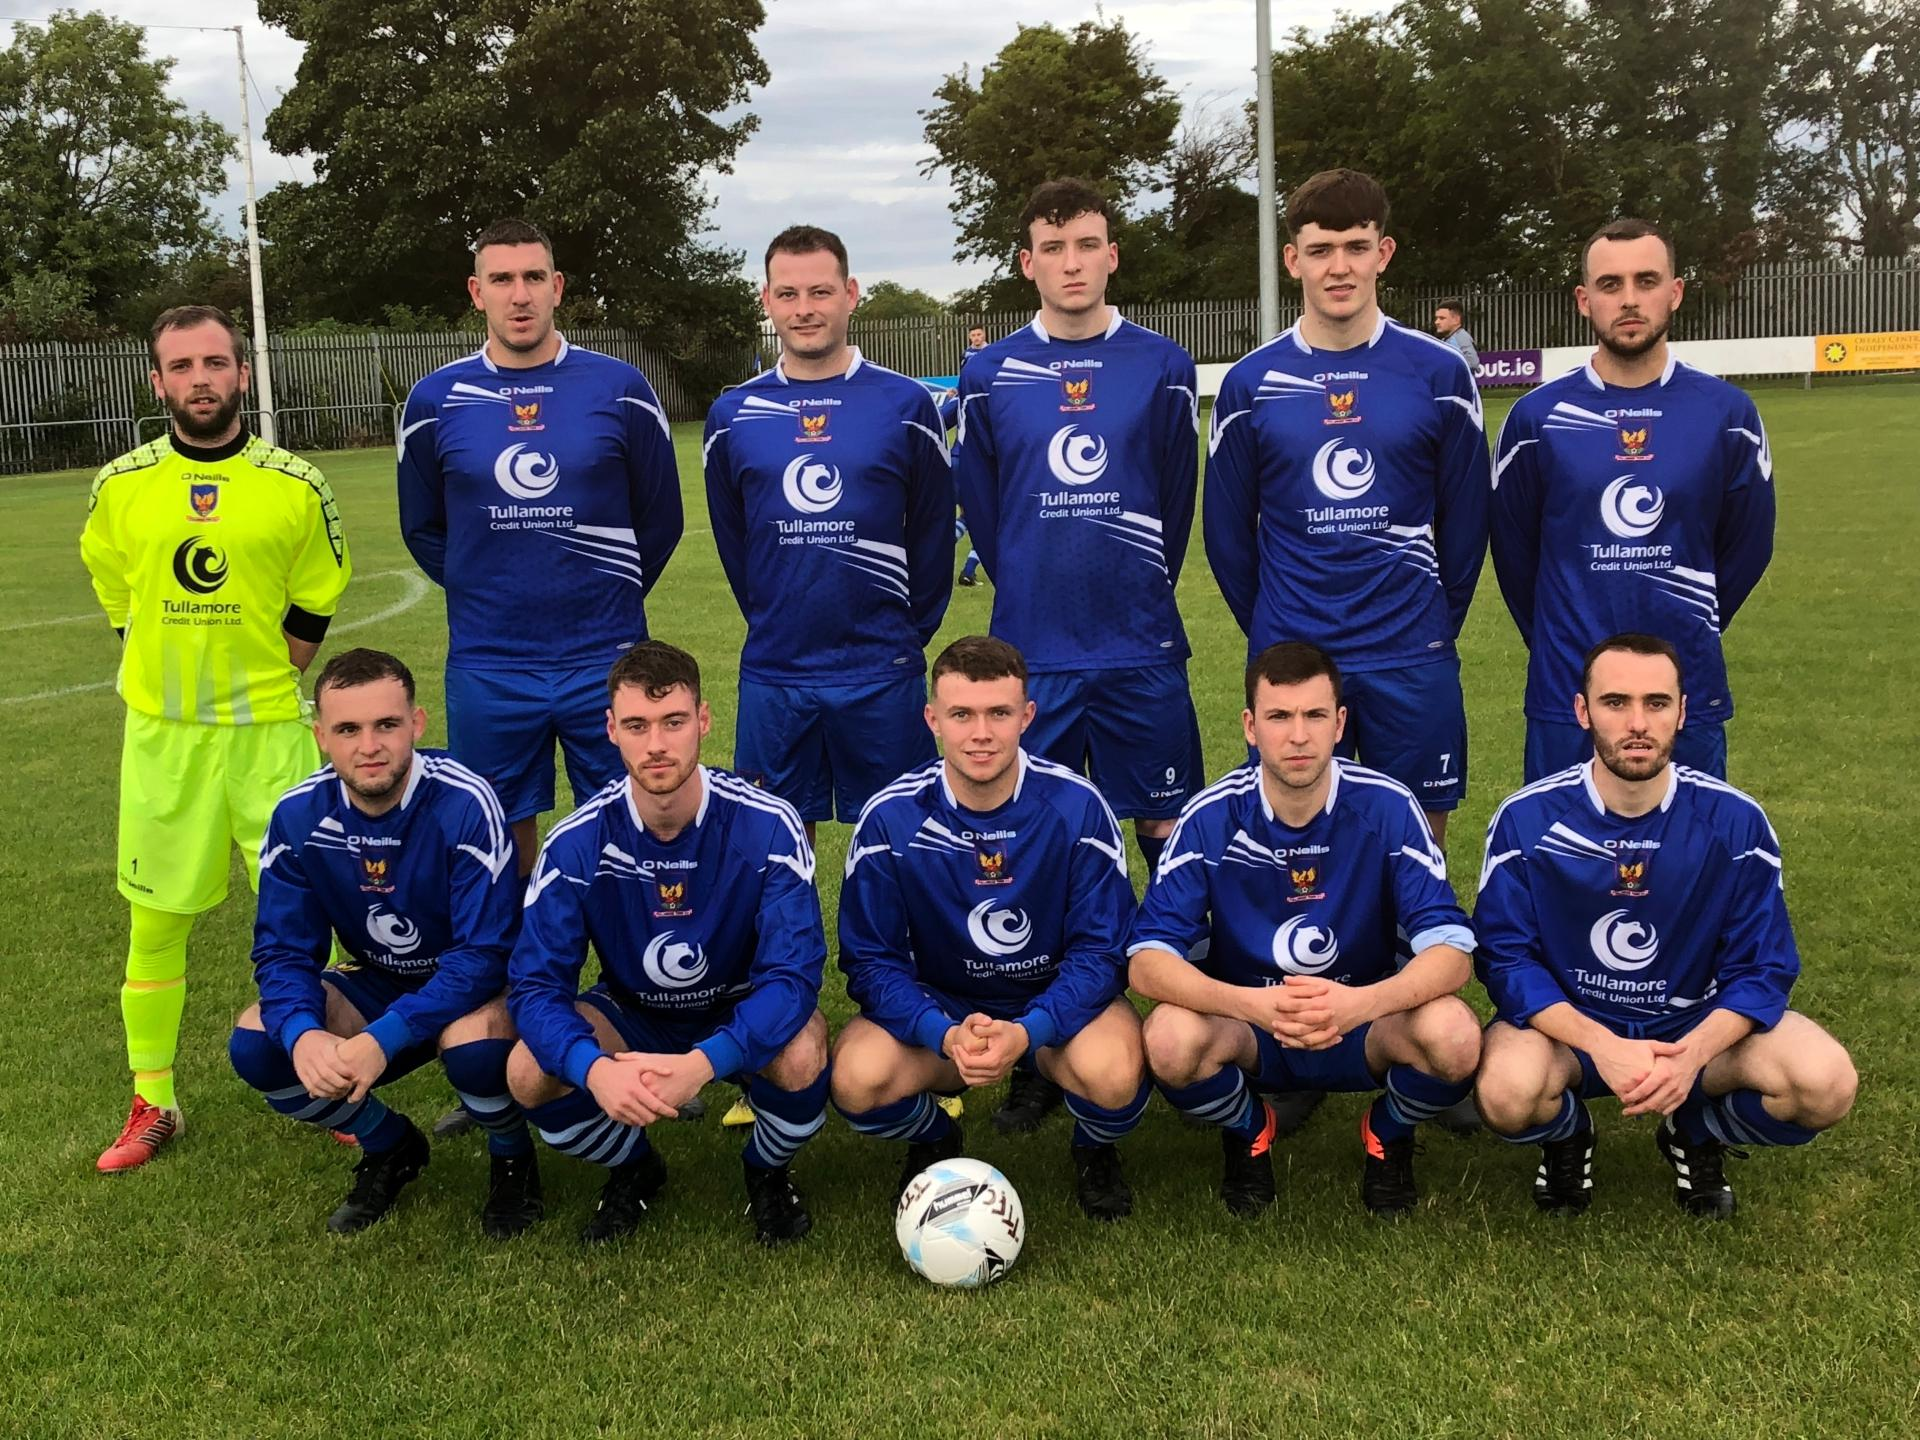 Local fundraiser organised for Mountmellick man and